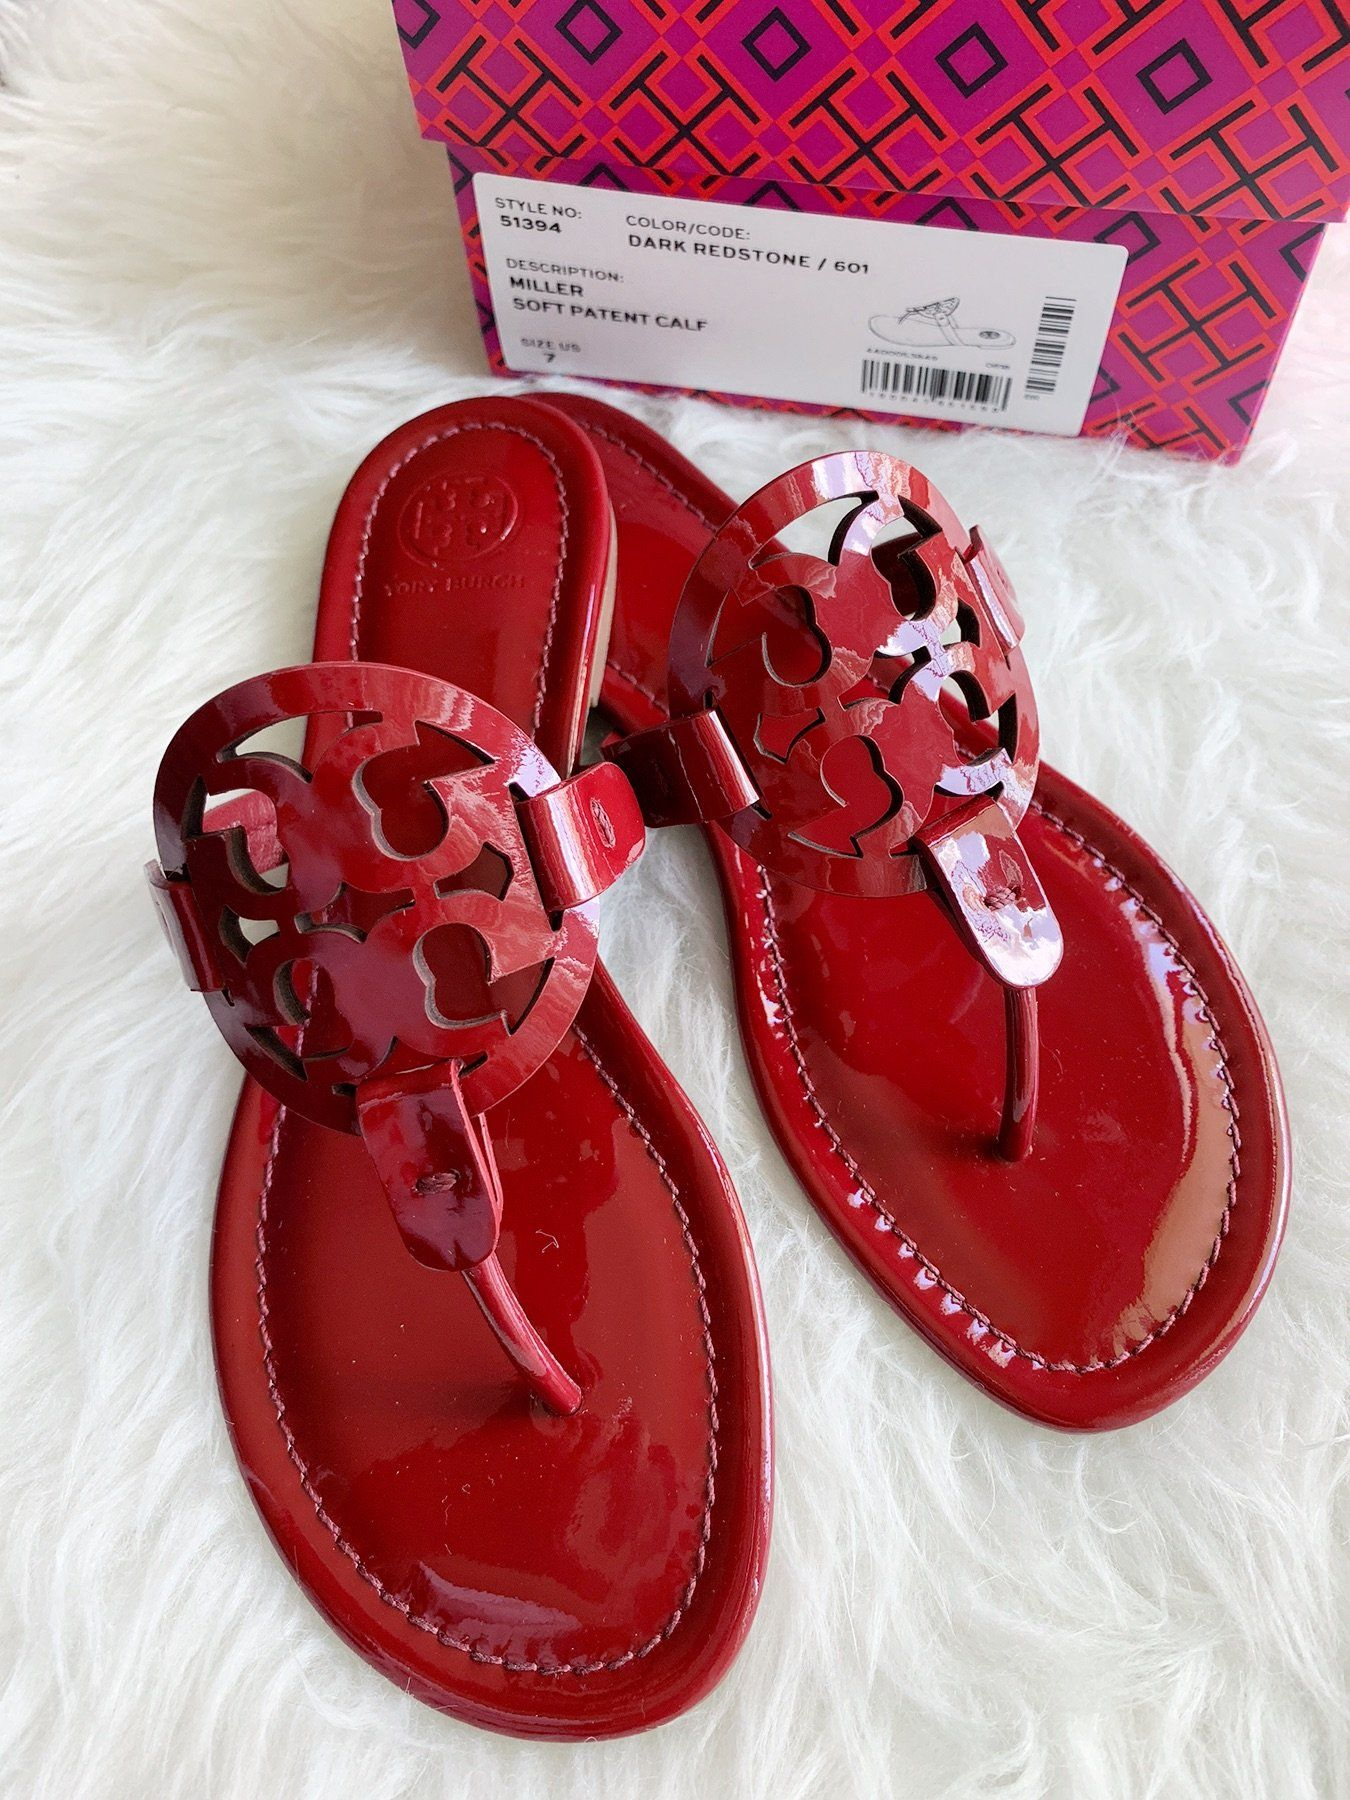 bbfe741f7914 Tory Burch Miller Sandals Flip Flop Dark Red Stone 7  ebayseller   tradesyseller  rated  ebaycommunity  toprated  ebayfashion  Handbags   poshpackages ...